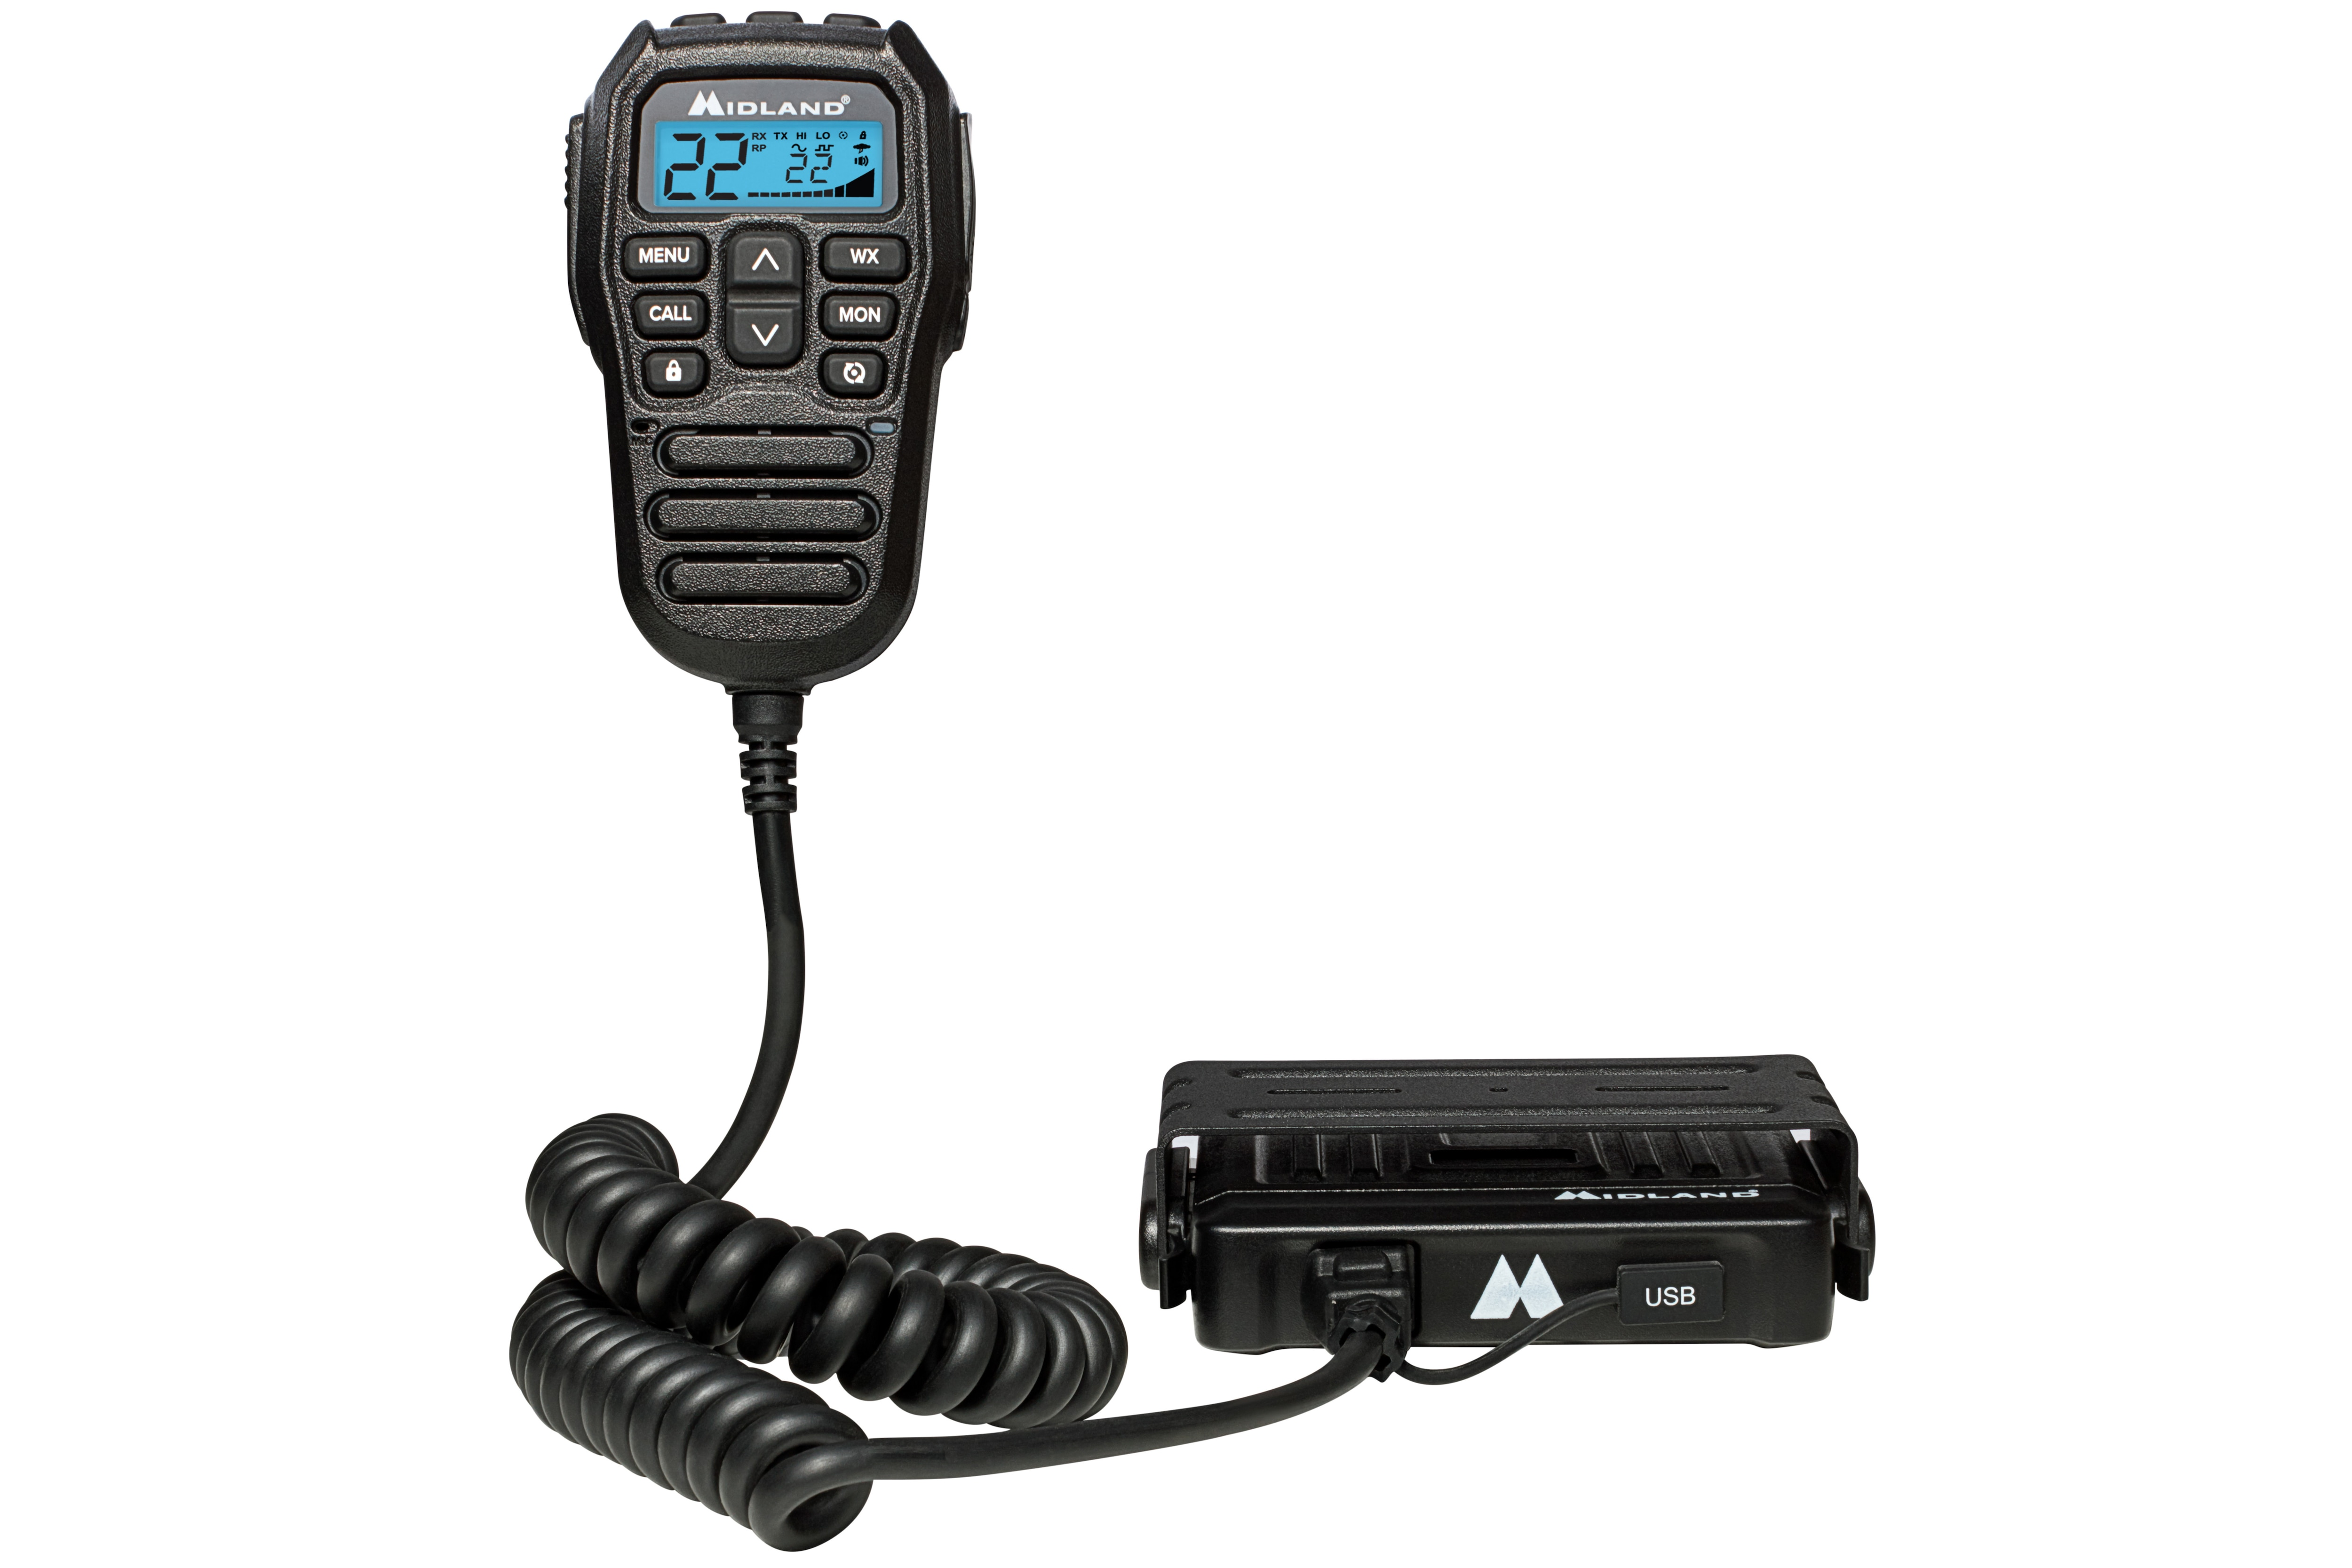 new products midland mxt275 gmrs radio cb communication